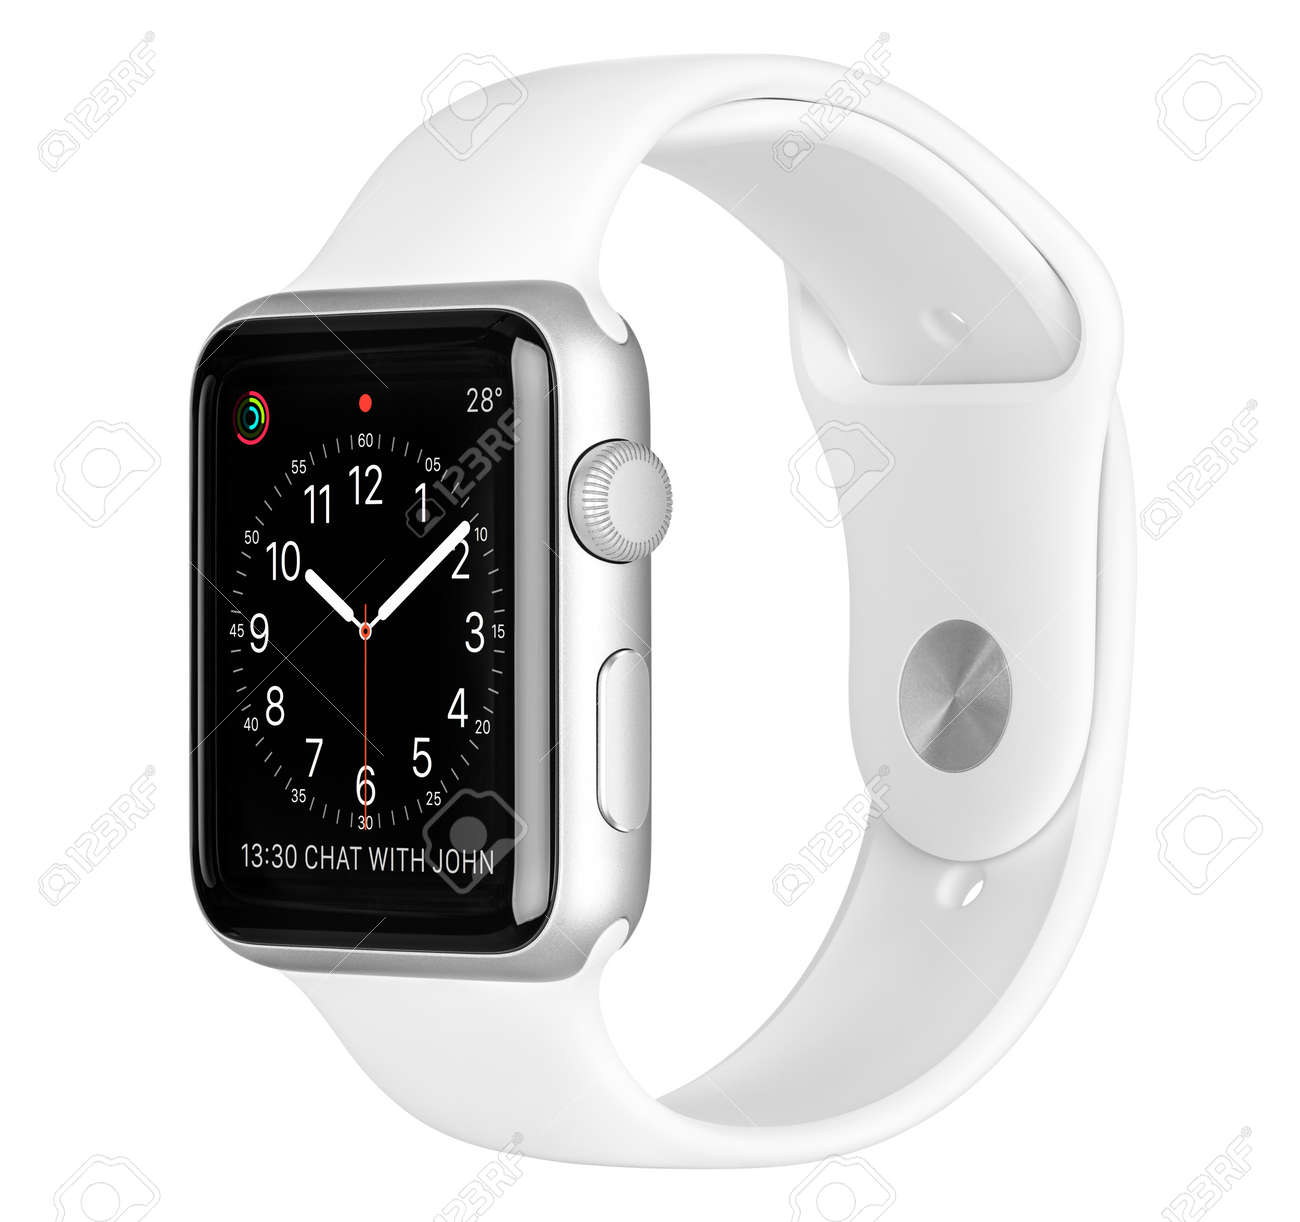 Varna, Bulgaria - October 16, 2015: Apple Watch Sport 42mm Silver Aluminum Case with White Sport Band with clock face on the display. Side view studio shot fully in focus. Isolated on white background. - 49200380